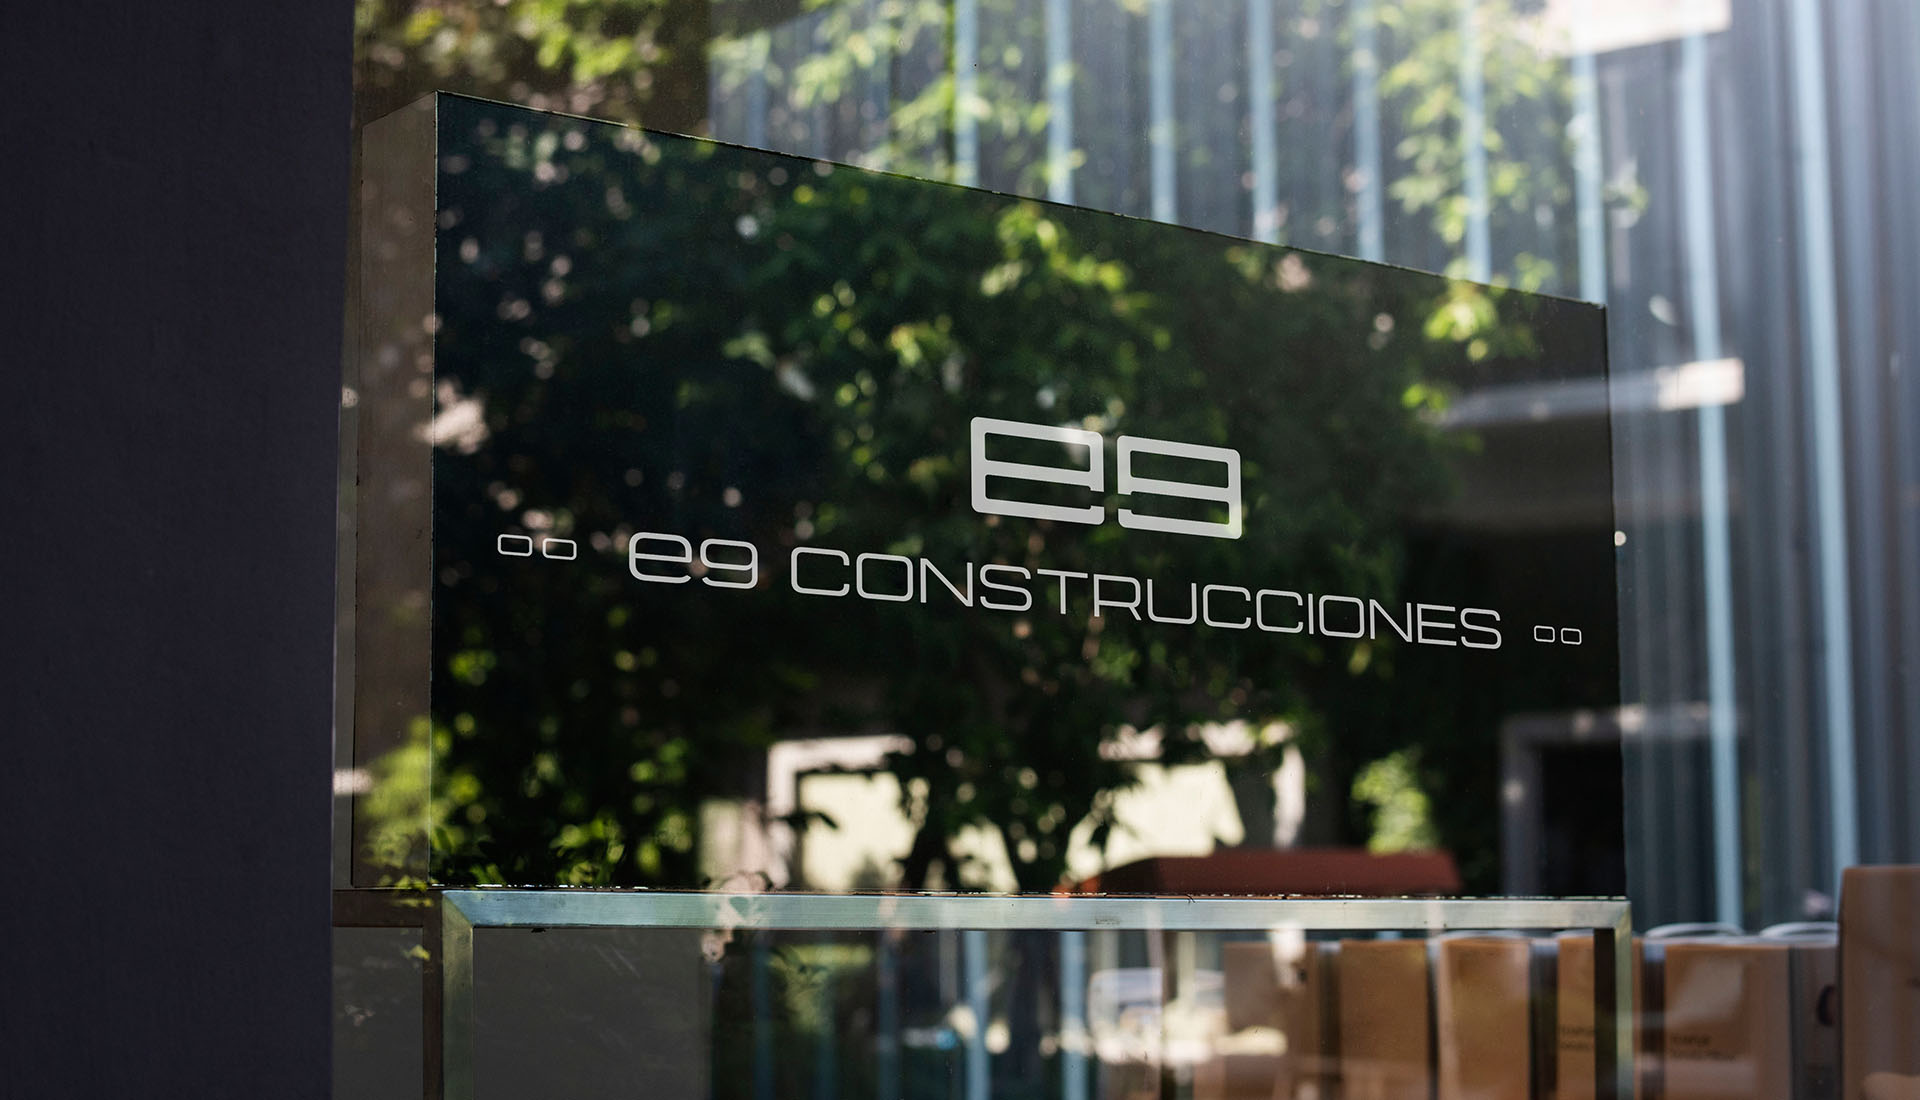 trabajo-e9 construcciones-agencia de marketing valencia-agencia de publicidad-agencia de marketing digital valencia-constructora en valencia-5